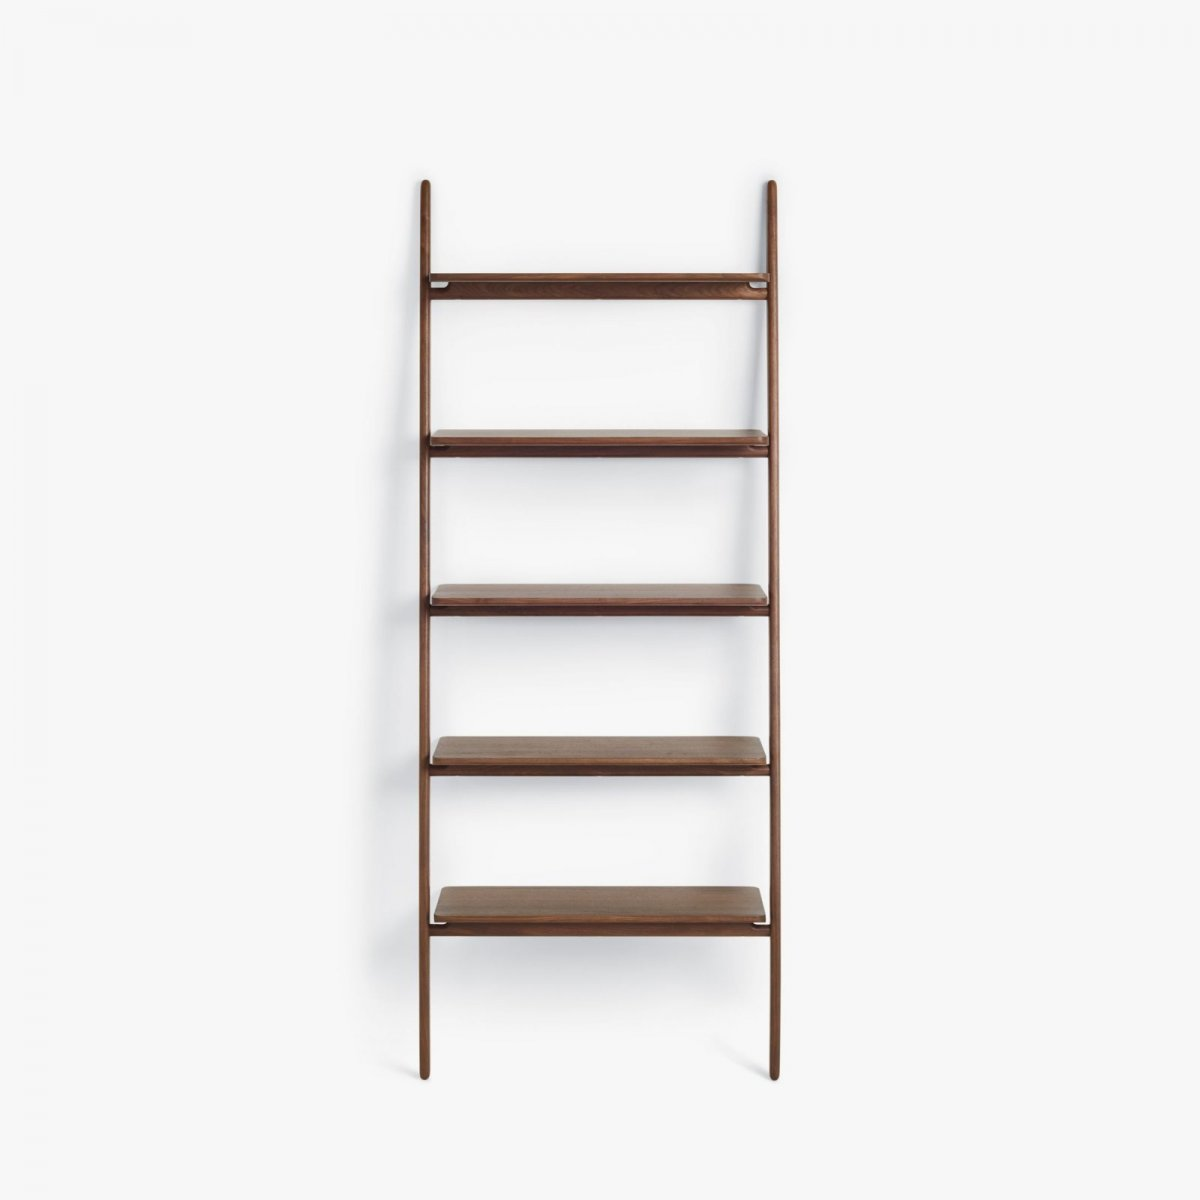 Folk Ladder Shelving, walnut.